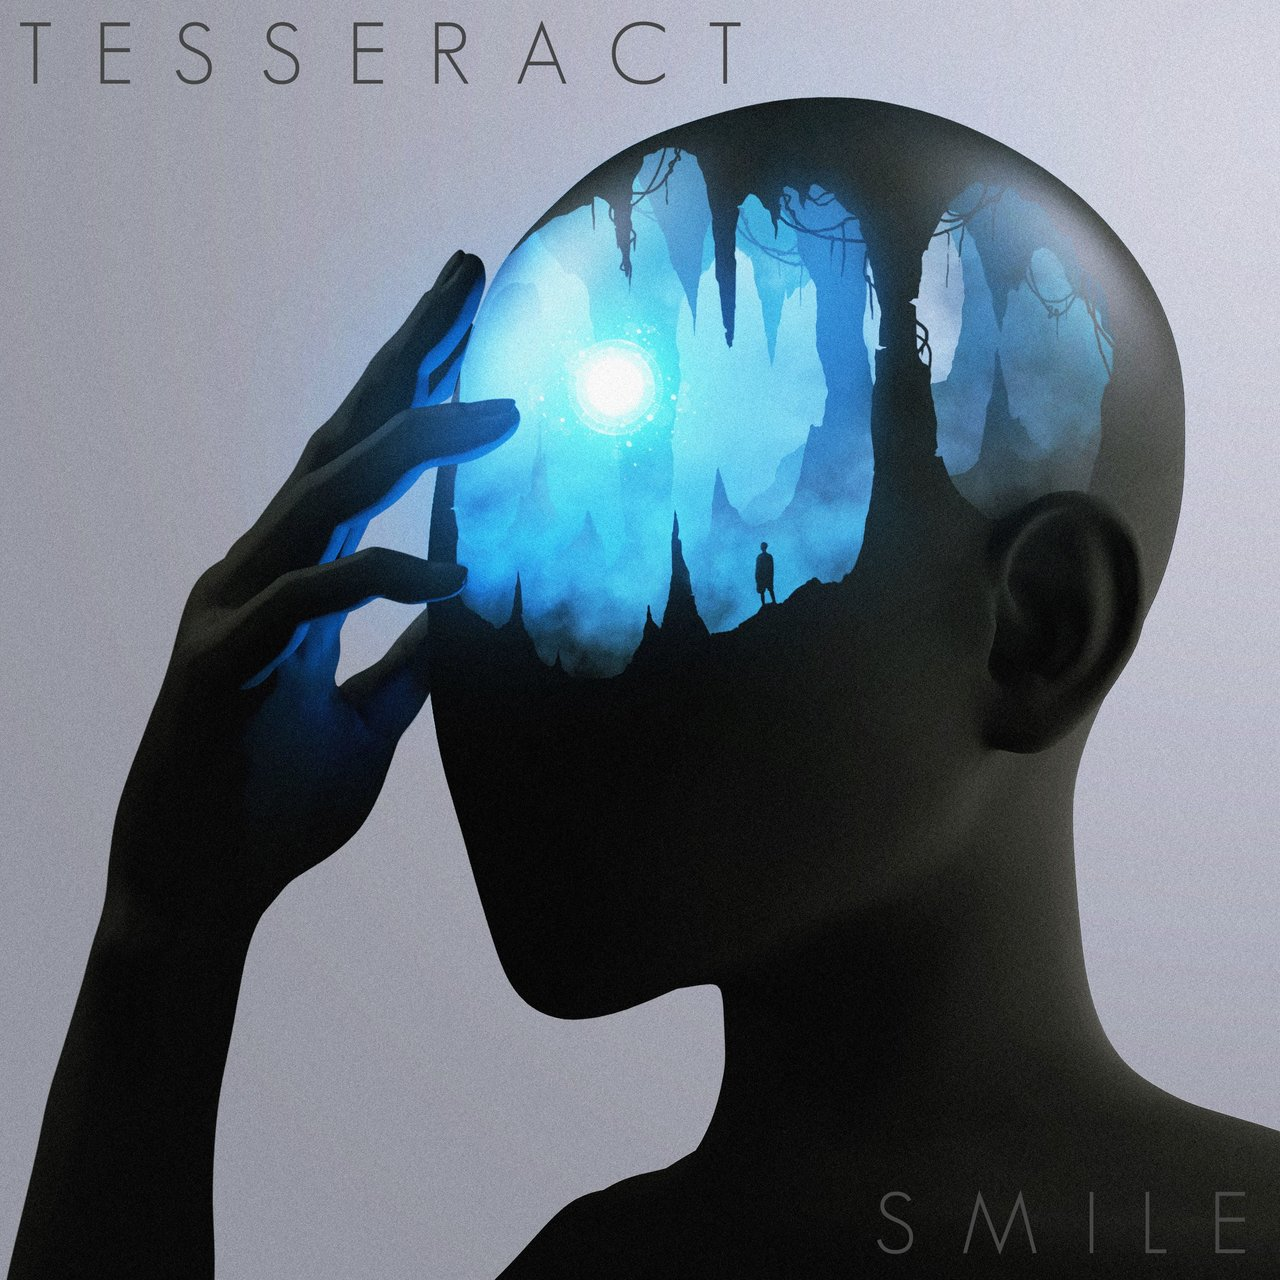 TesseracT - Smile [single] (2017)